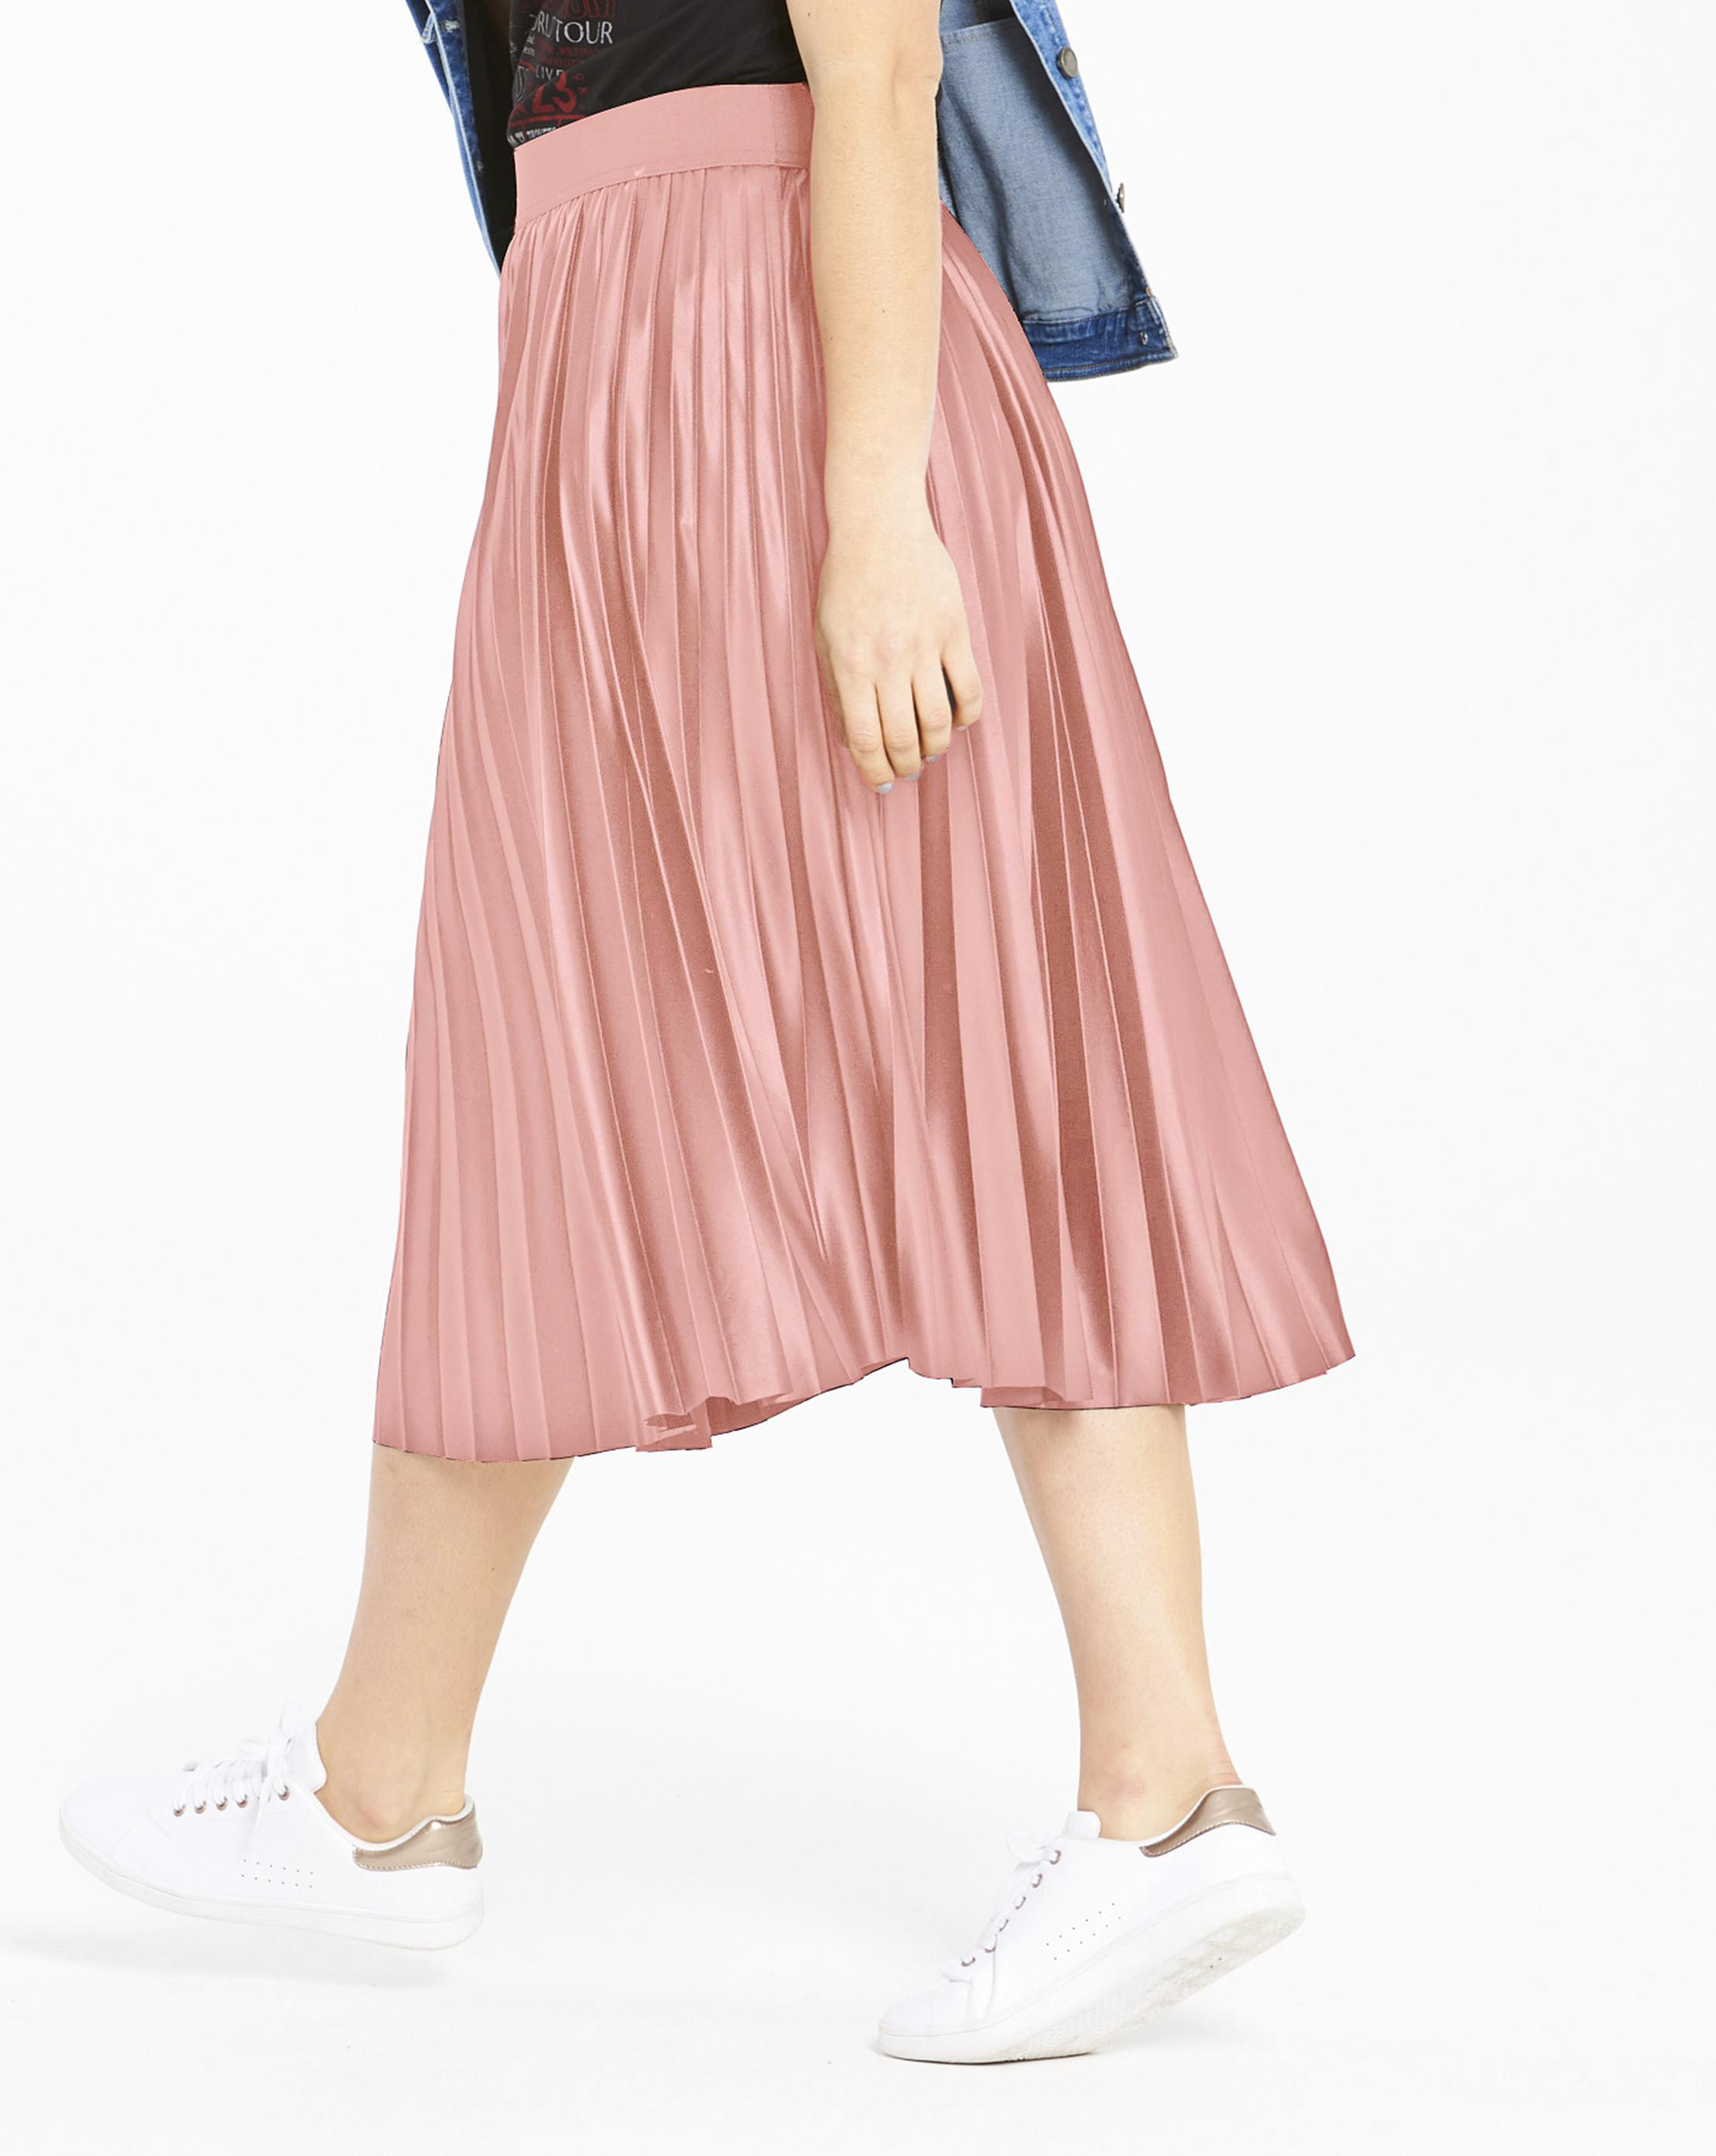 65e9c4d4b3e Lyst - Simply Be Wet Look Sunray Pleat Midi Skirt in Pink